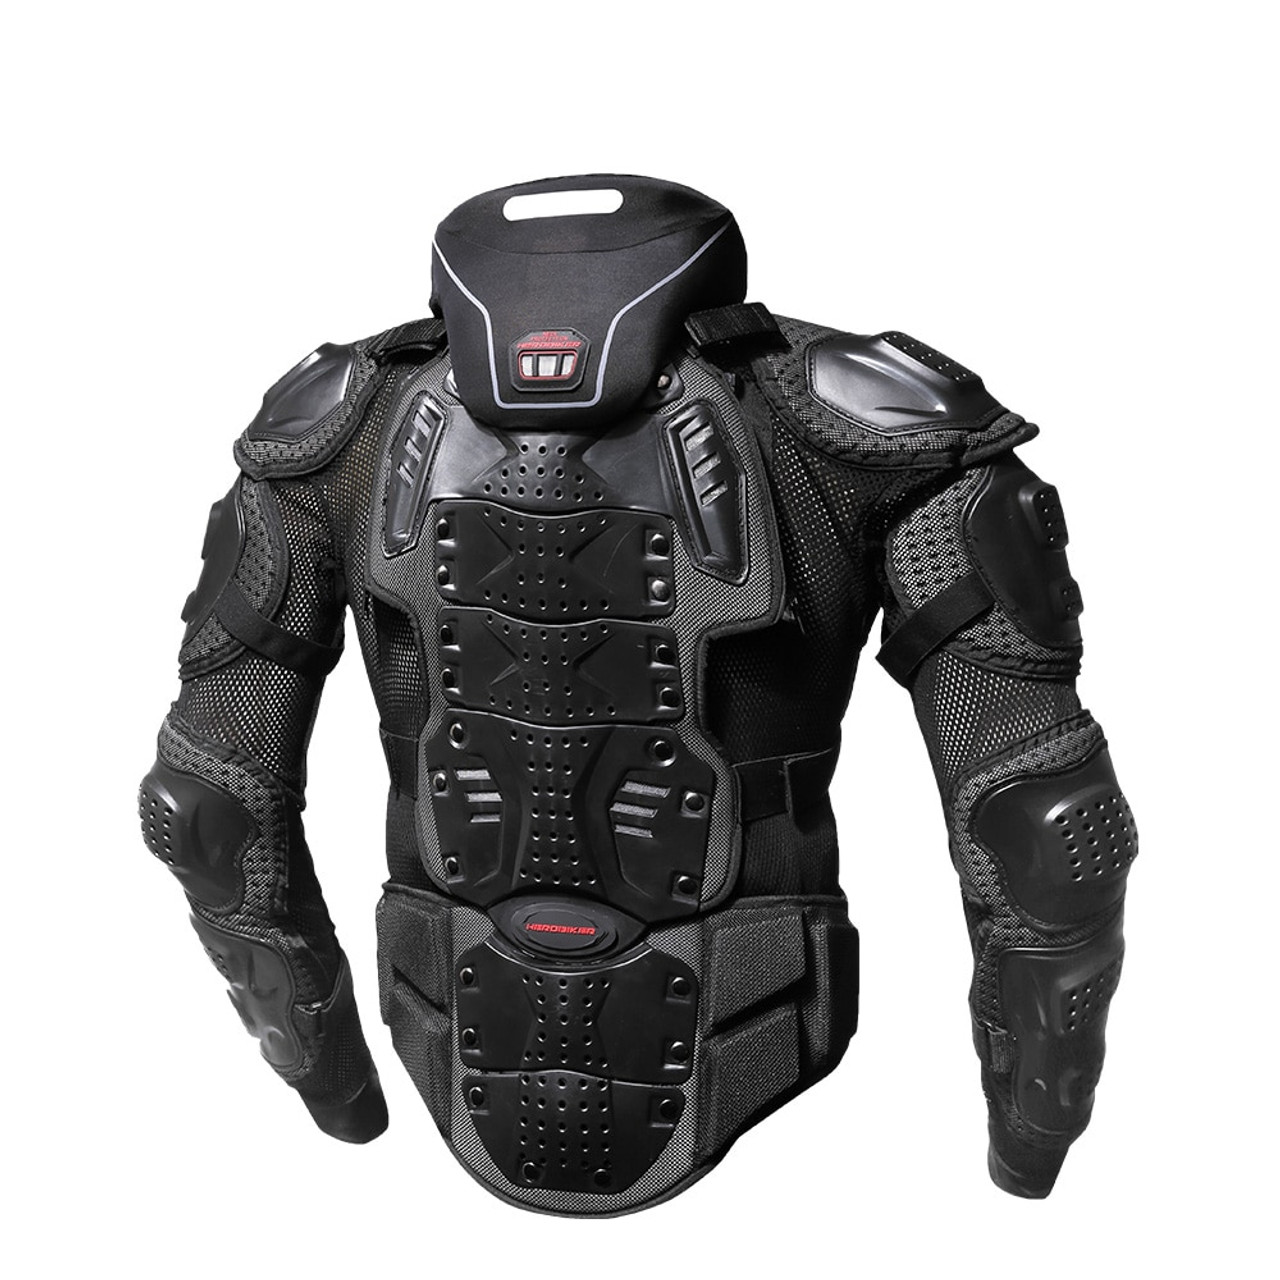 Motocross//Motorcycle Spine Armour Protection Body Protector,Back Protector For Motorcycle Skiing Snowboarding,Racing Motorcycle Motorbike Back /& Spine Protector